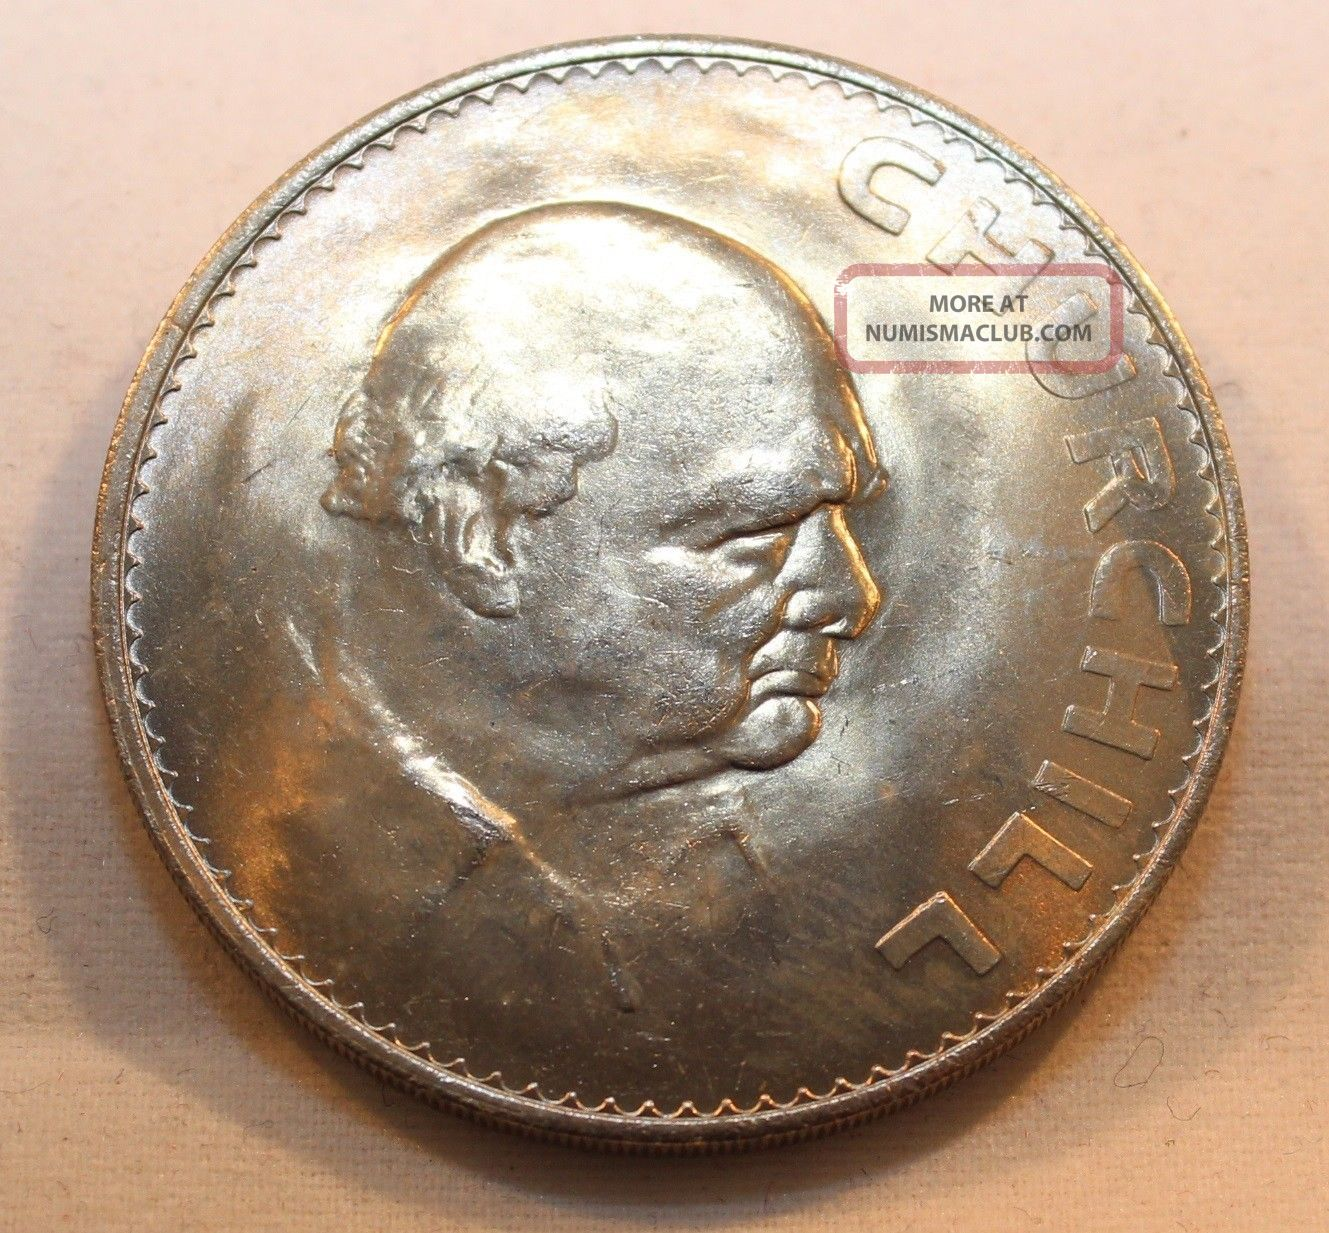 1965 Great Britain Crown Coin - Winston Churchill Great Luster UK (Great Britain) photo